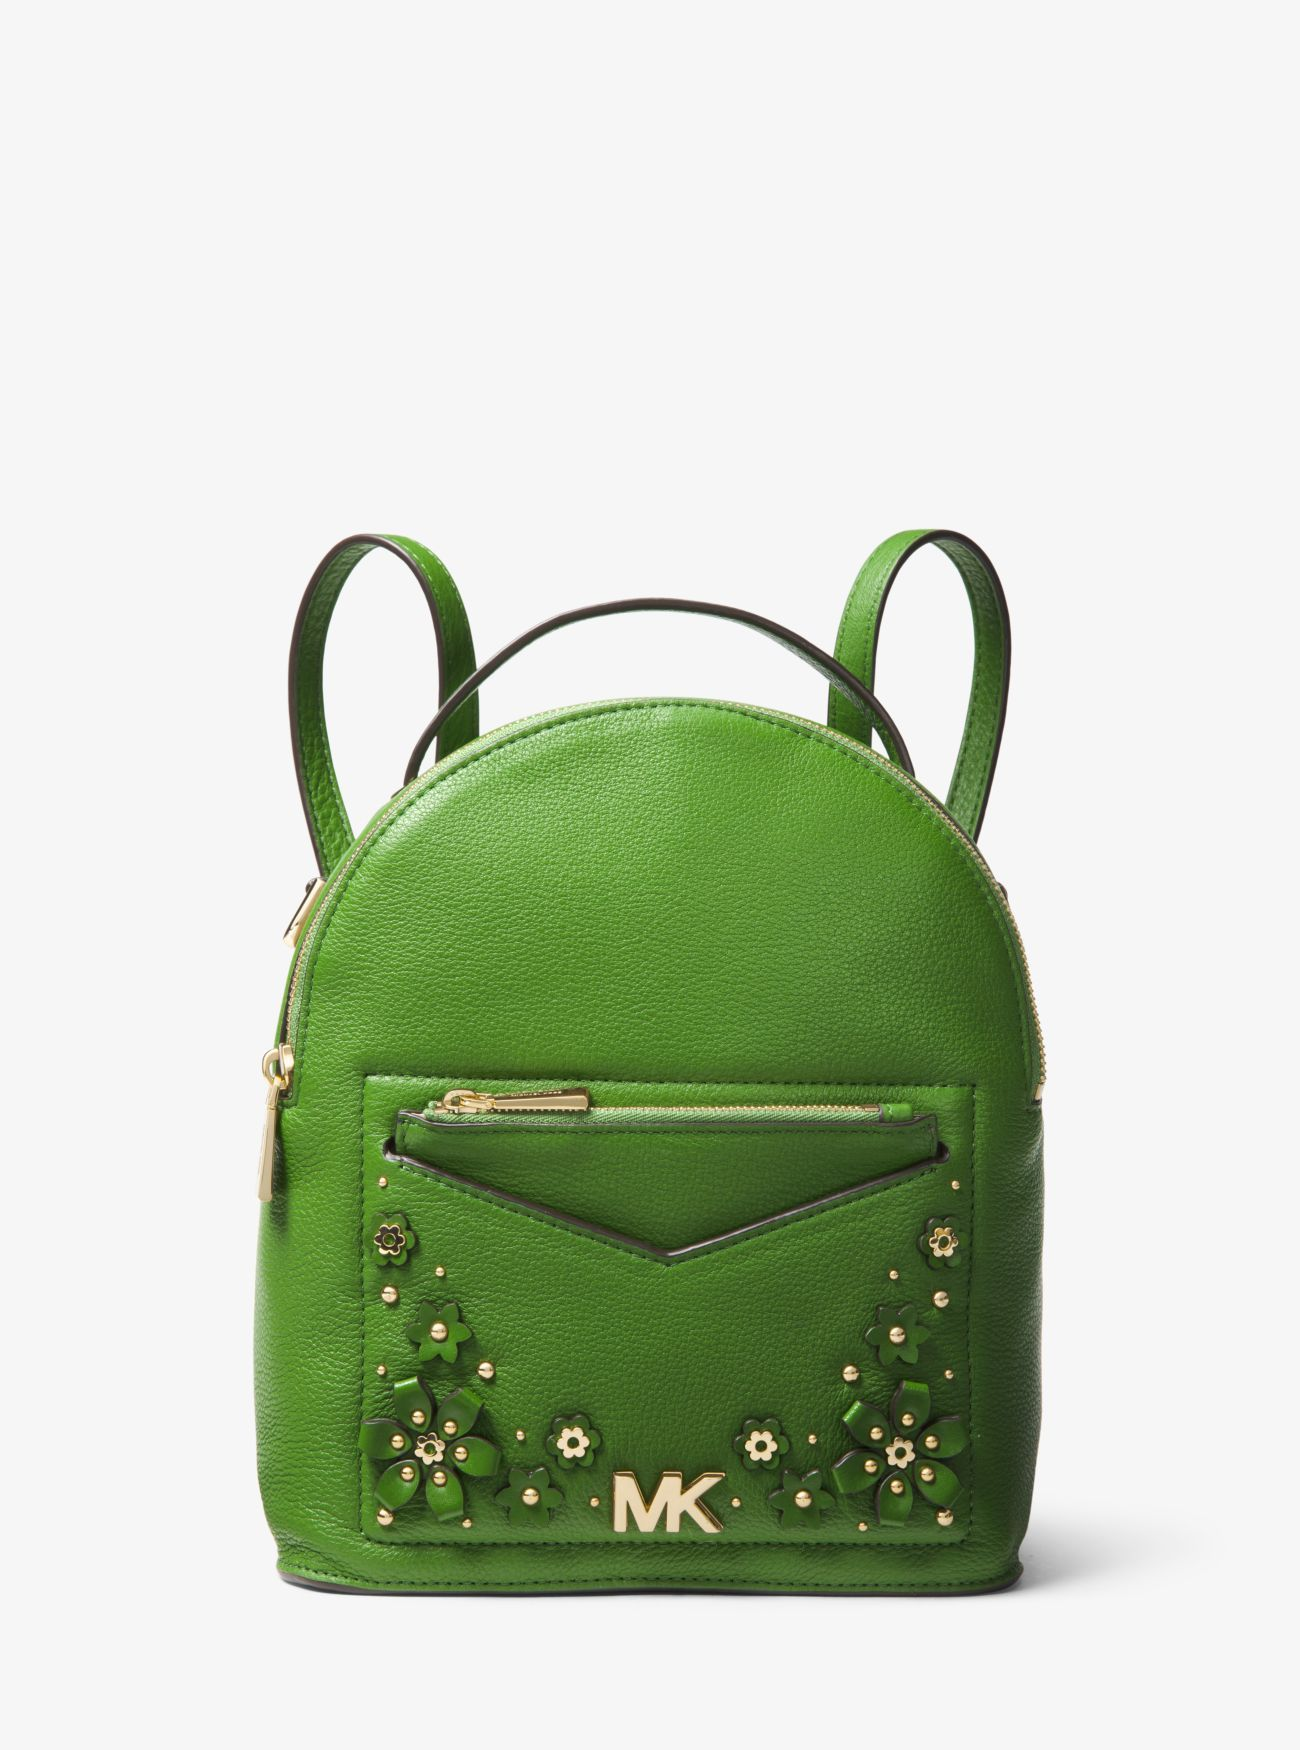 2af9964b4d90ee ... where to buy michael kors bags uk sale backpacks crossbody shoulder .  c9cb3 74cd4